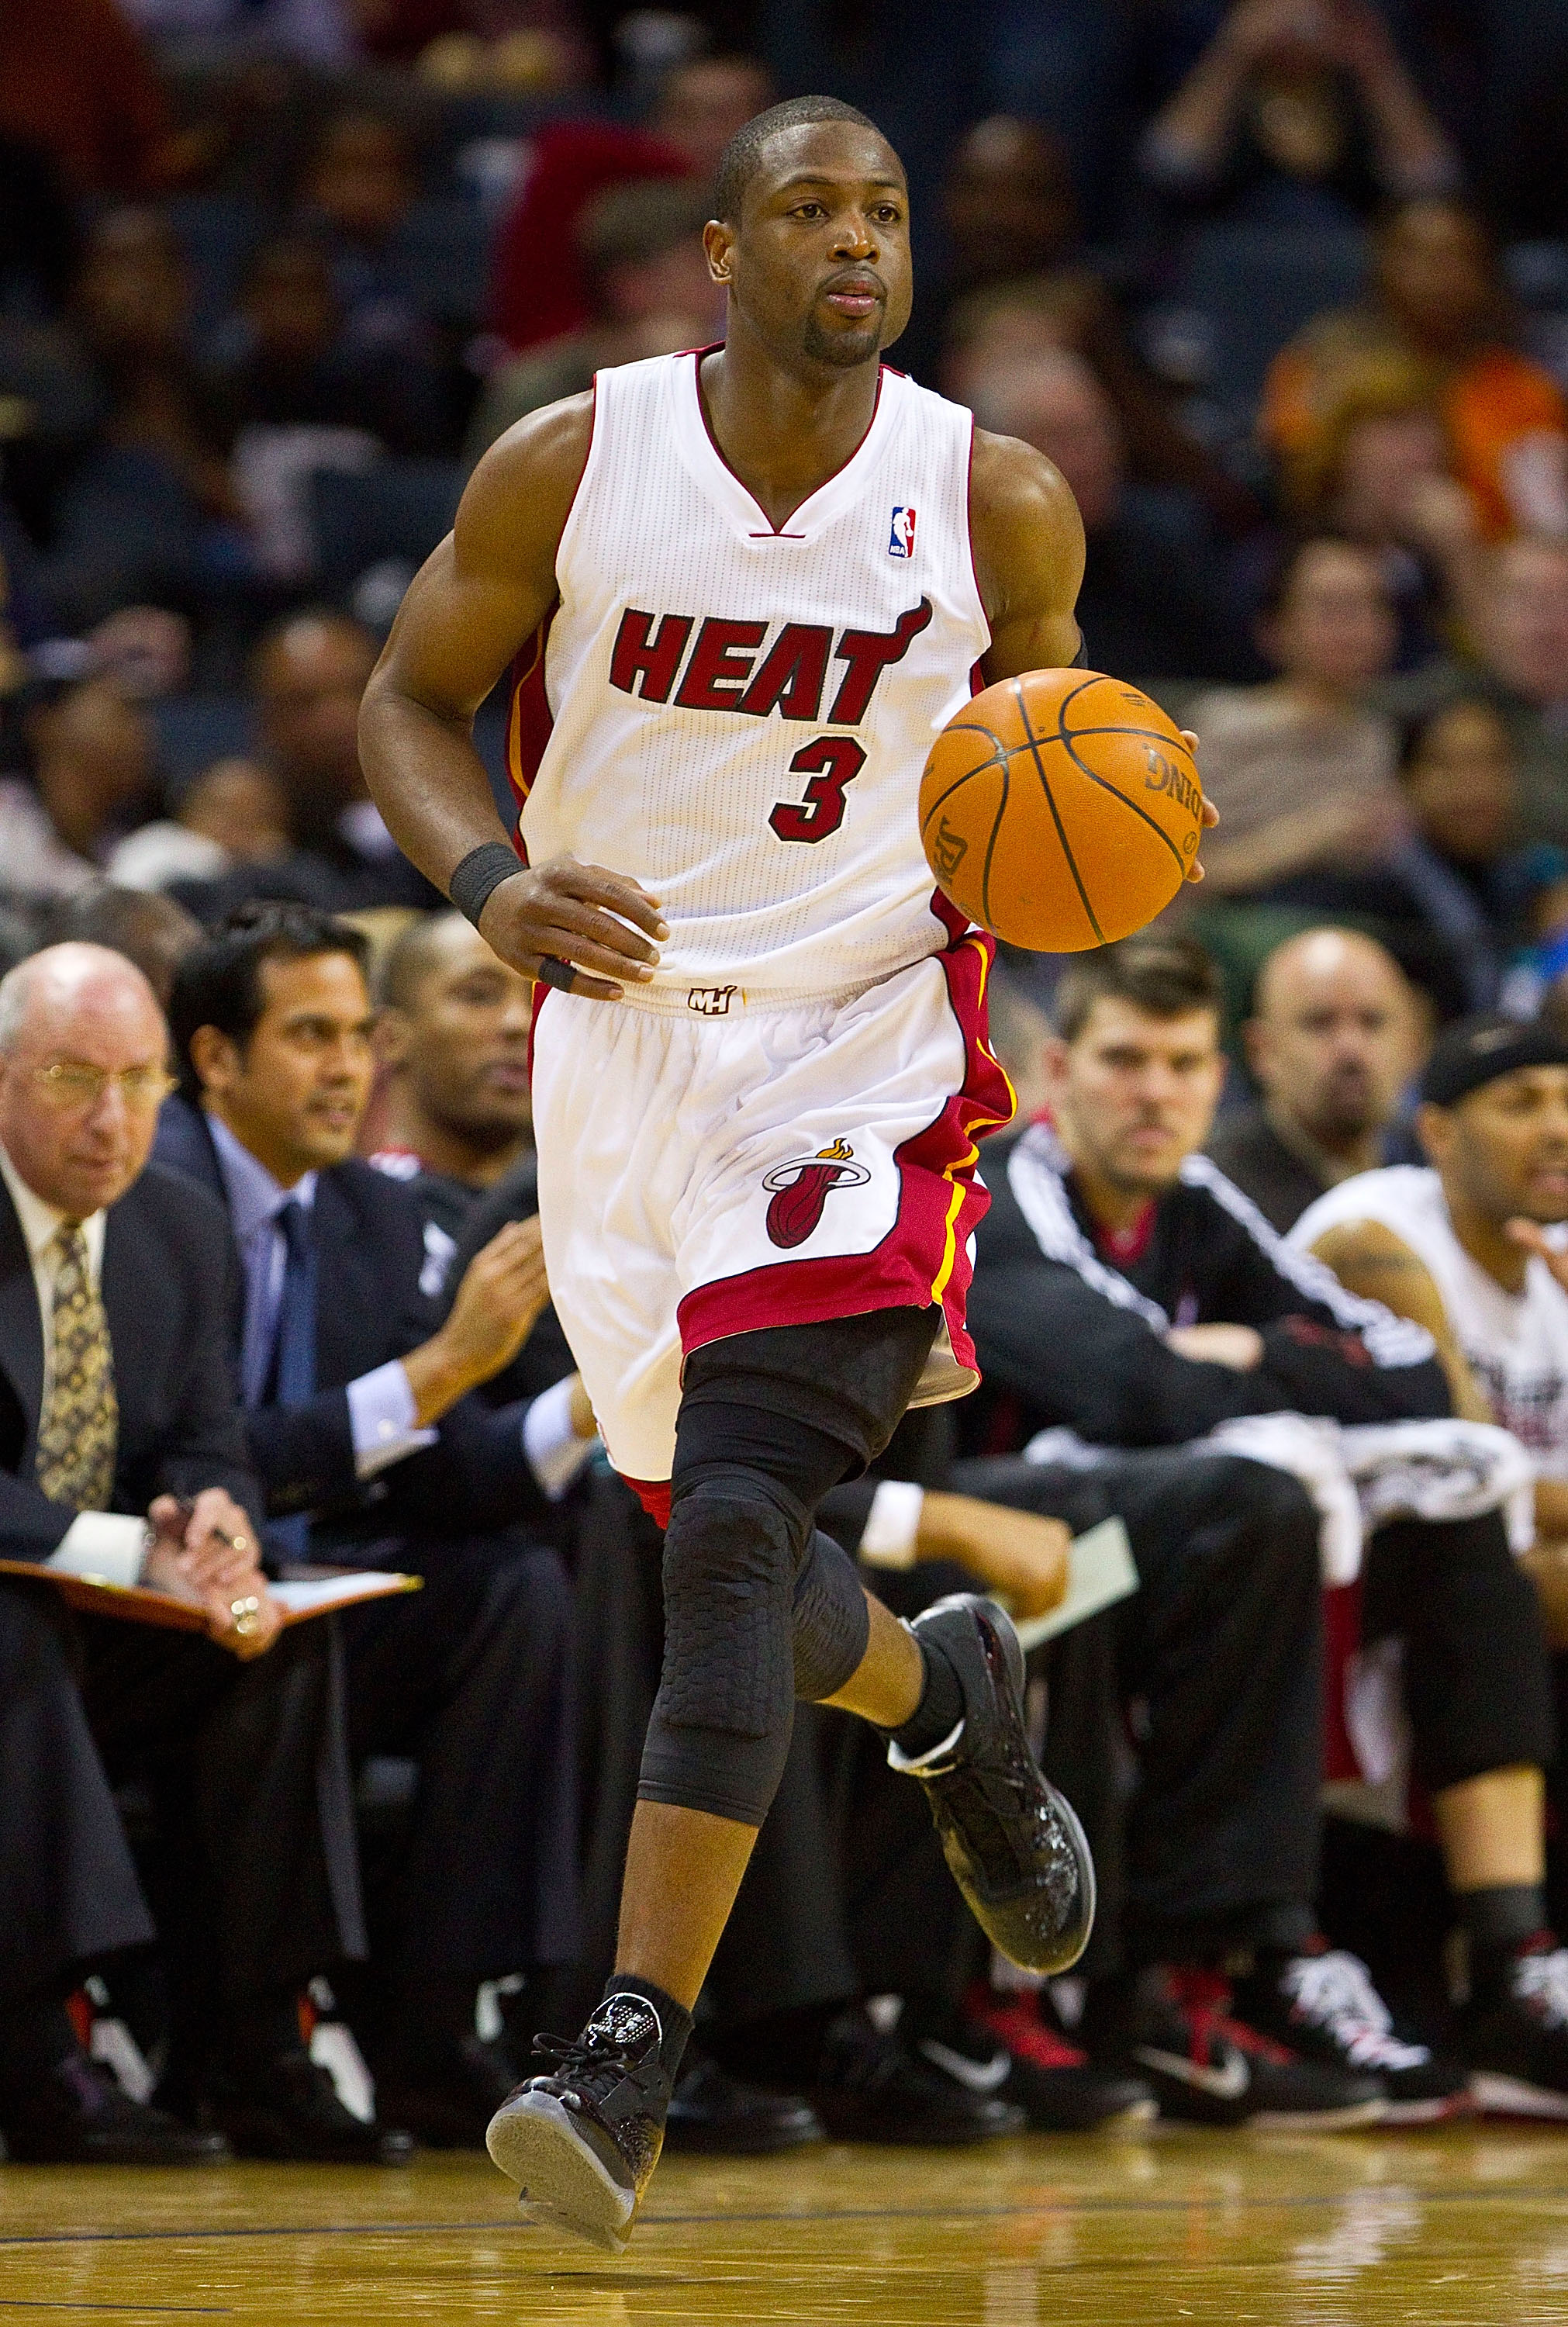 CHARLOTTE, NC - FEBRUARY 04:   Dwyane Wade #3 of the Miami Heat dribbles the ball up court against the Charlotte Bobcats at the Time Warner Cable Arena on February 4, 2011 in Charlotte, North Carolina.  The Heat defeated the Bobcats 109-97.  NOTE TO USER: